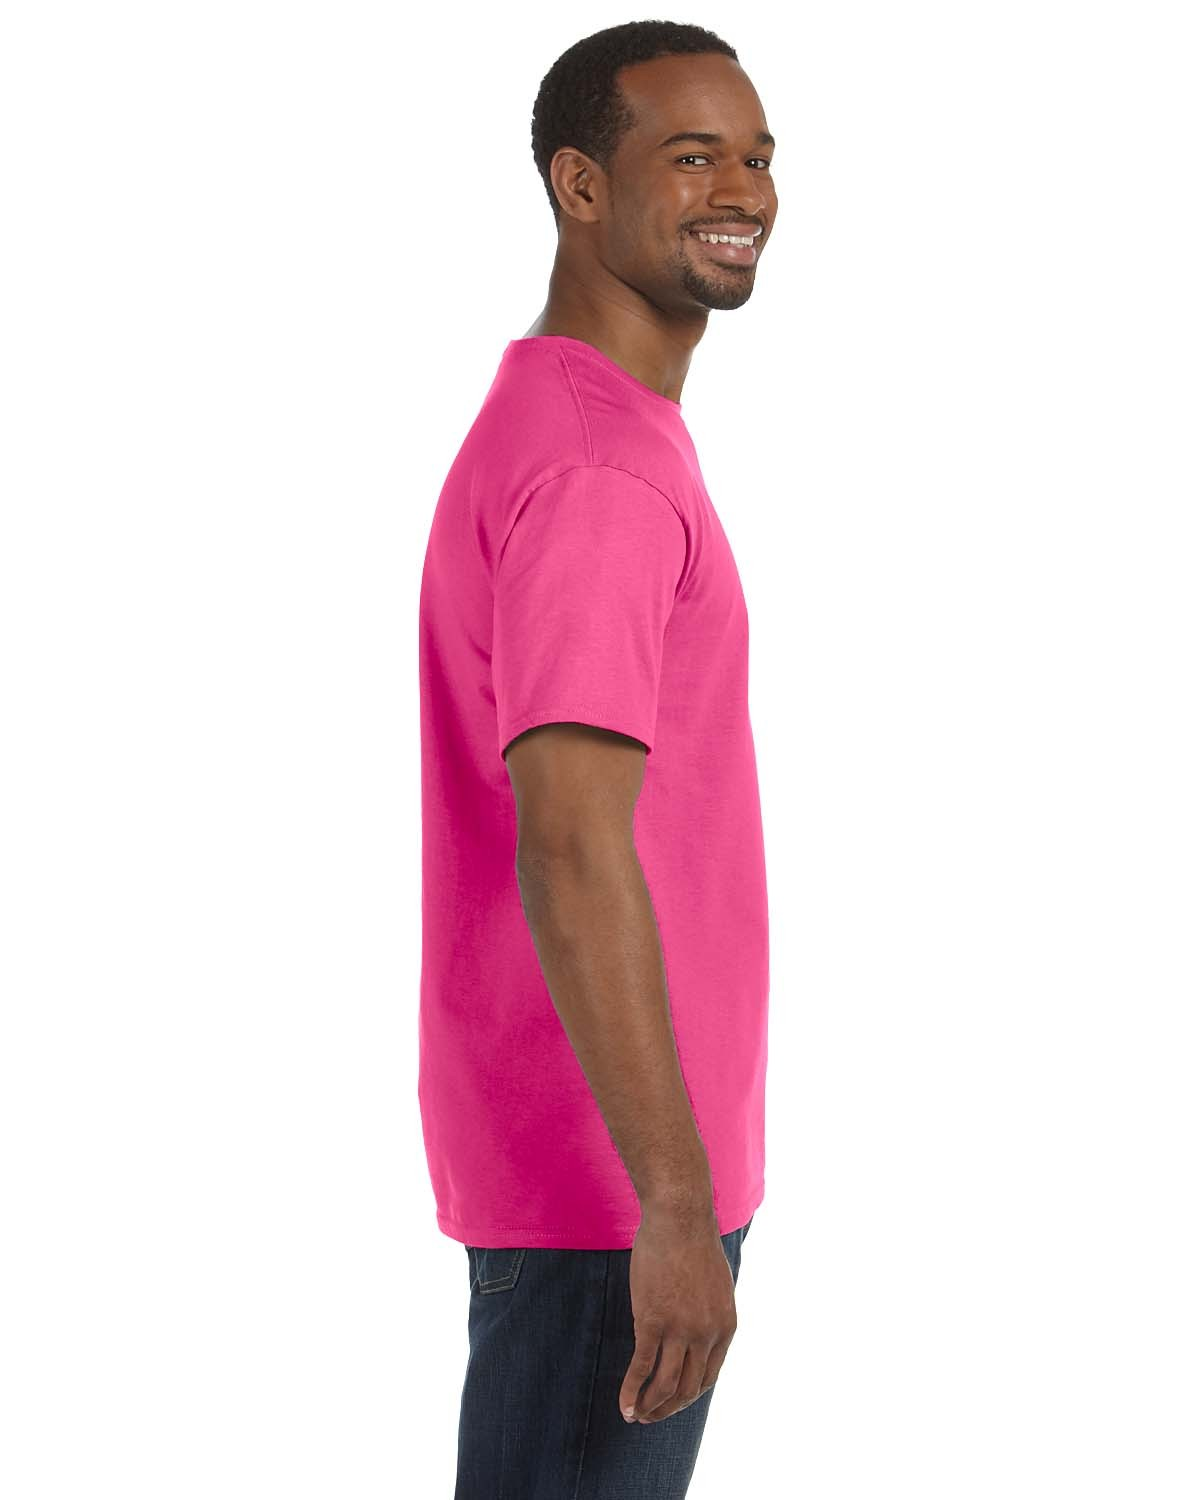 5250T Hanes WOW PINK